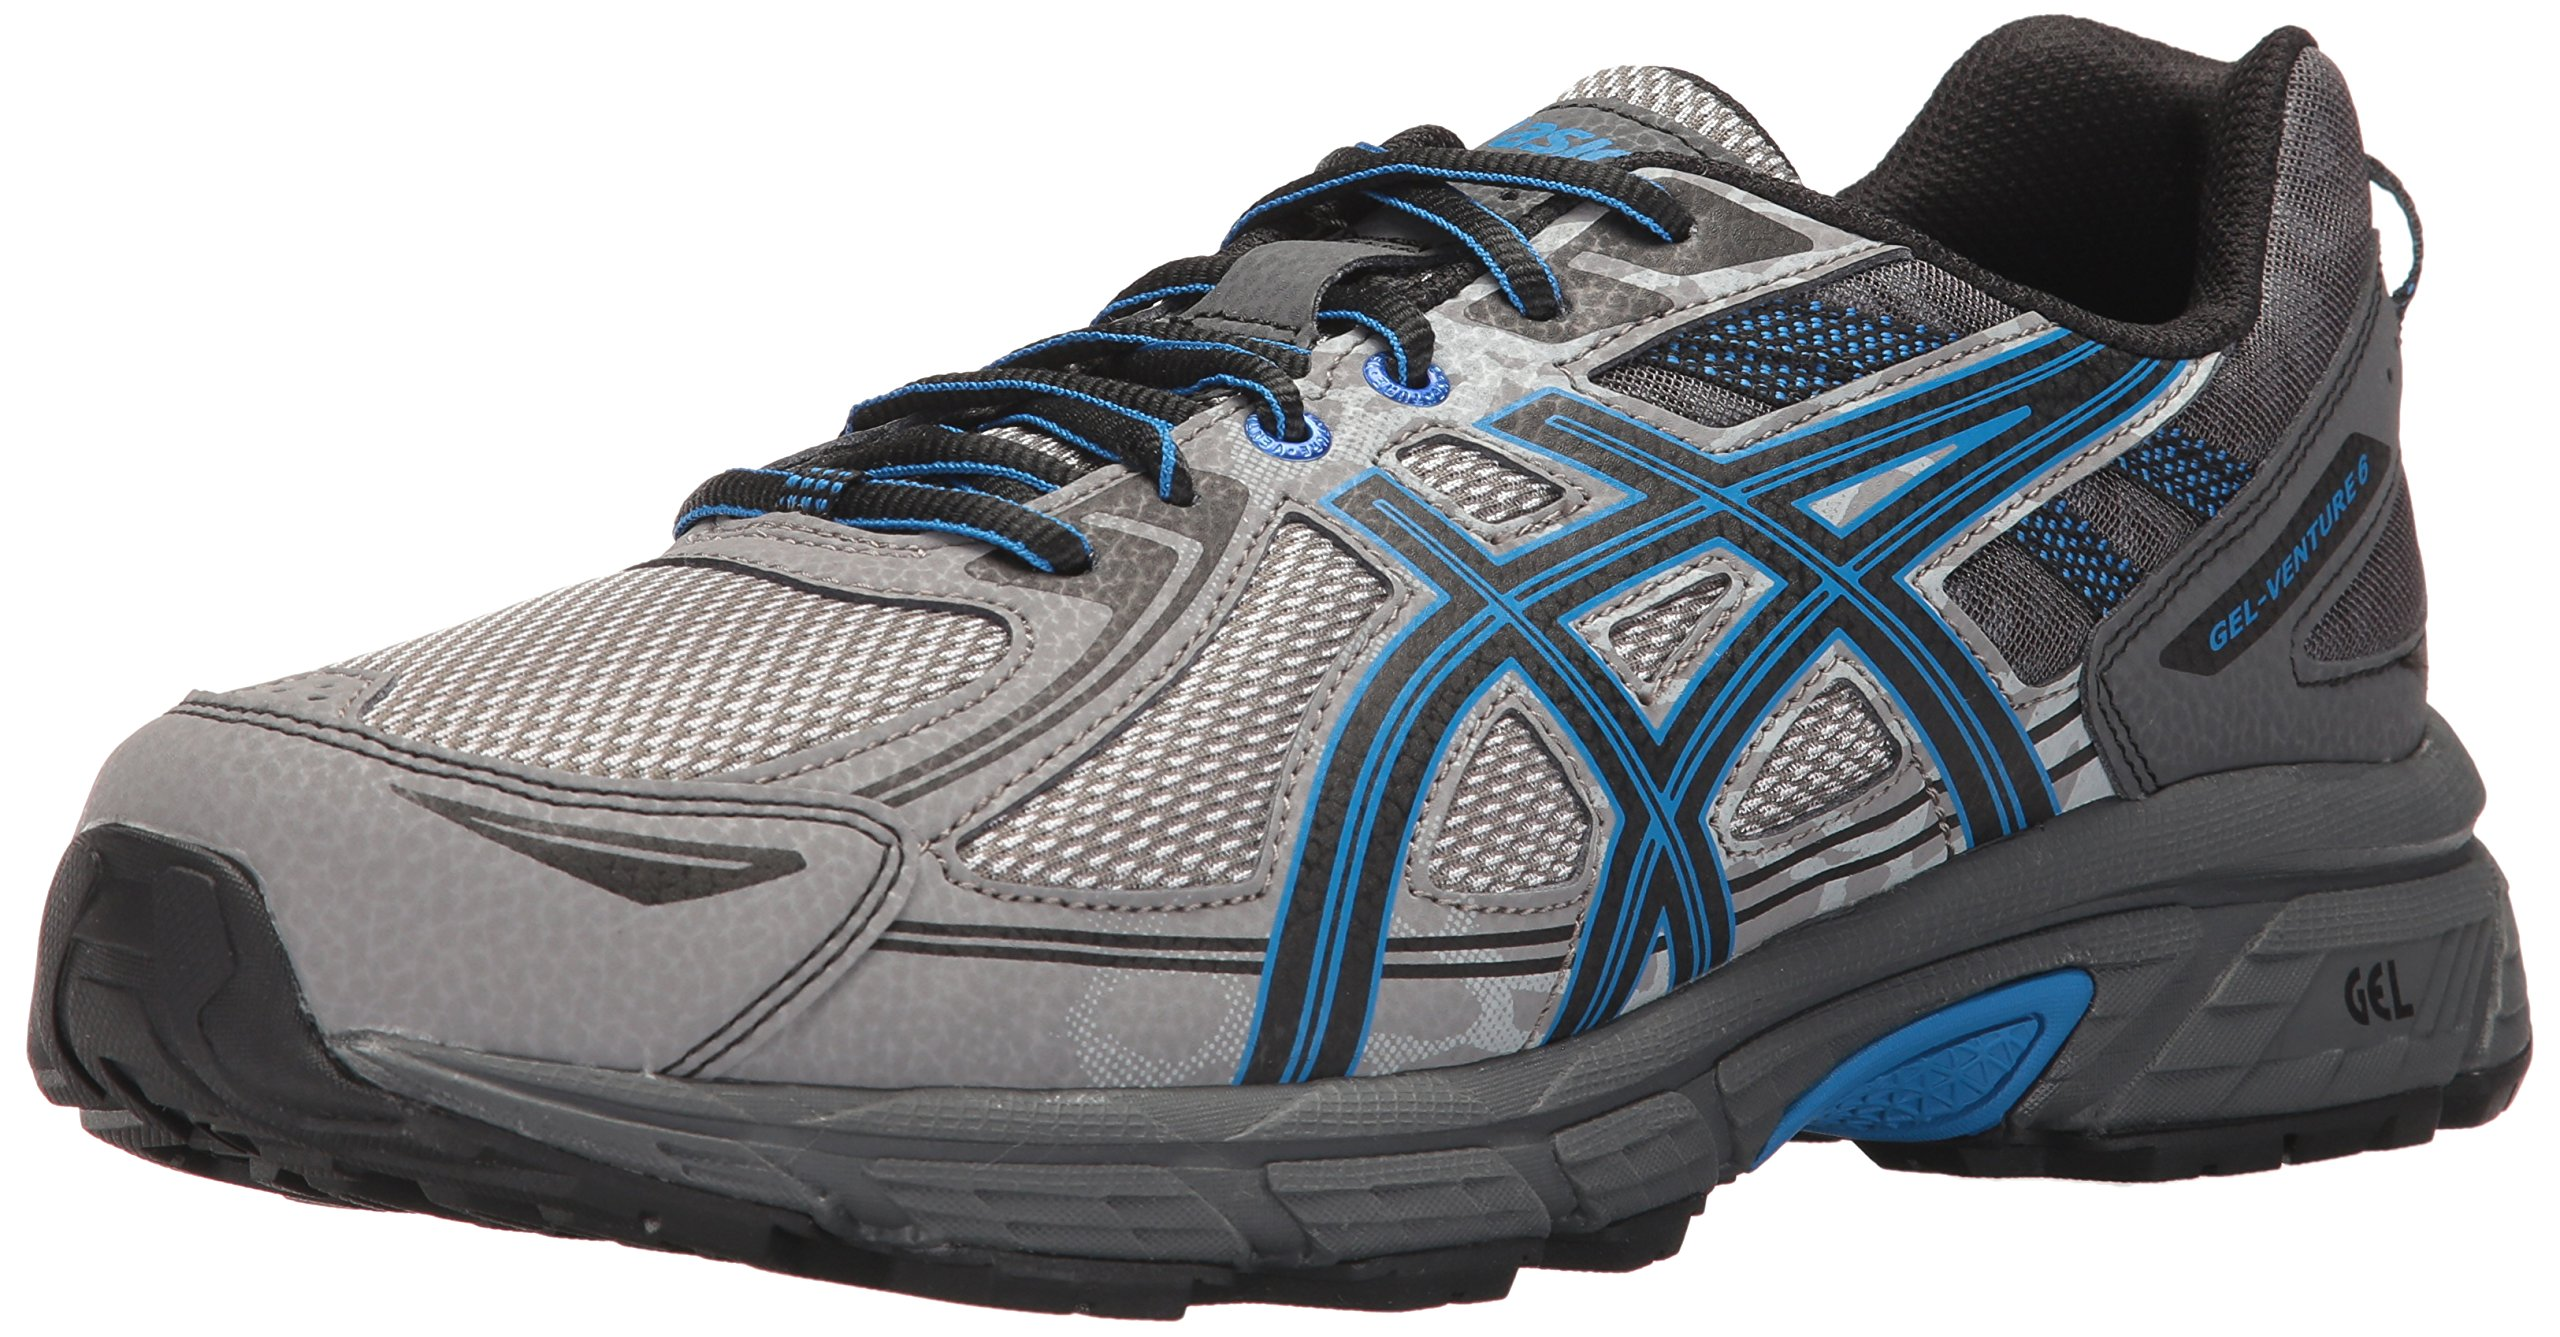 ASICS Mens Gel-Venture 6 Running Shoe Aluminum/Black/Directoire Blue 7 Medium US